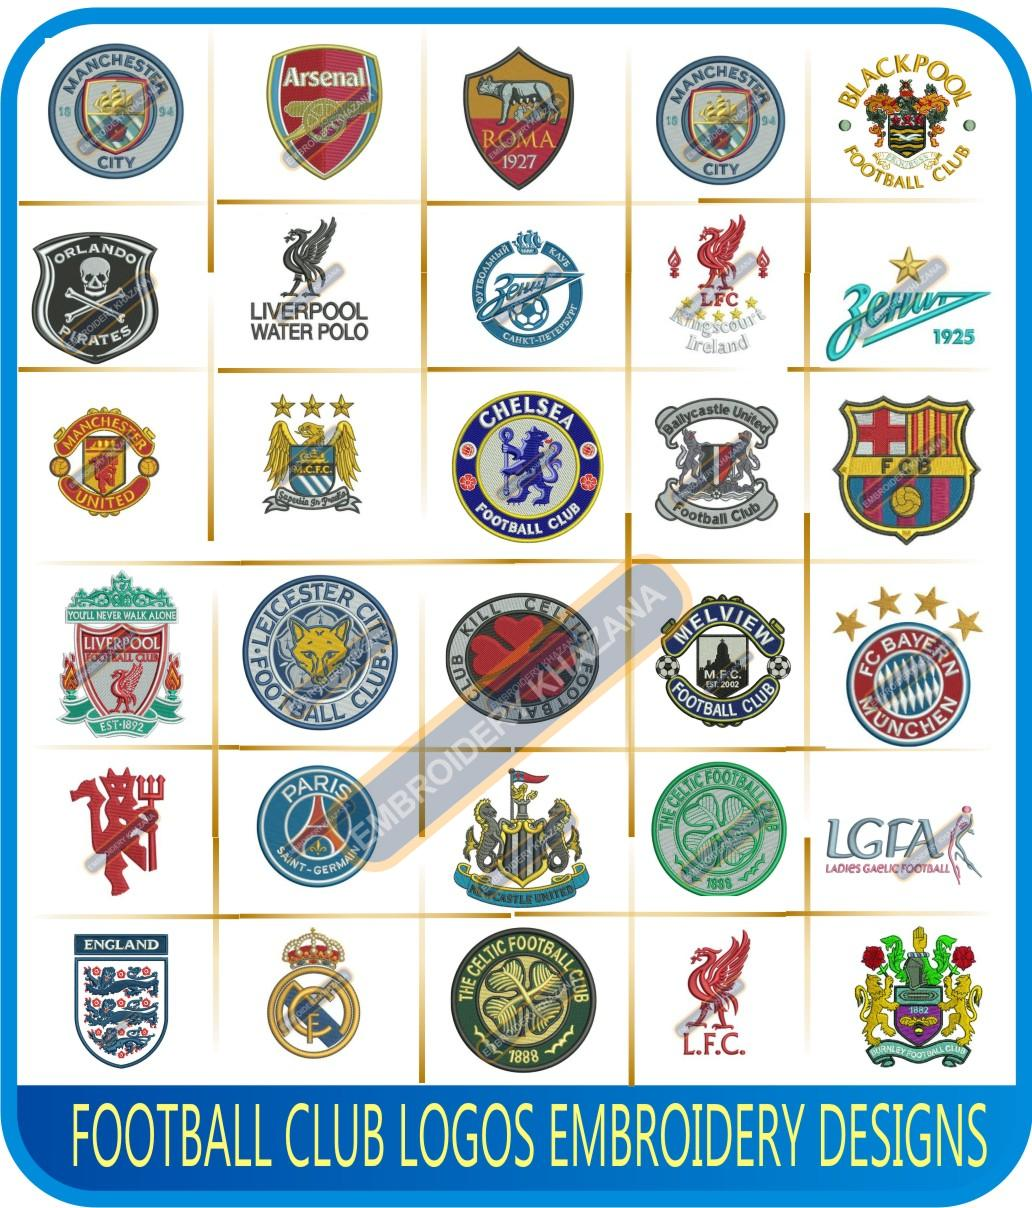 Football Club Logos Embroidery Designs